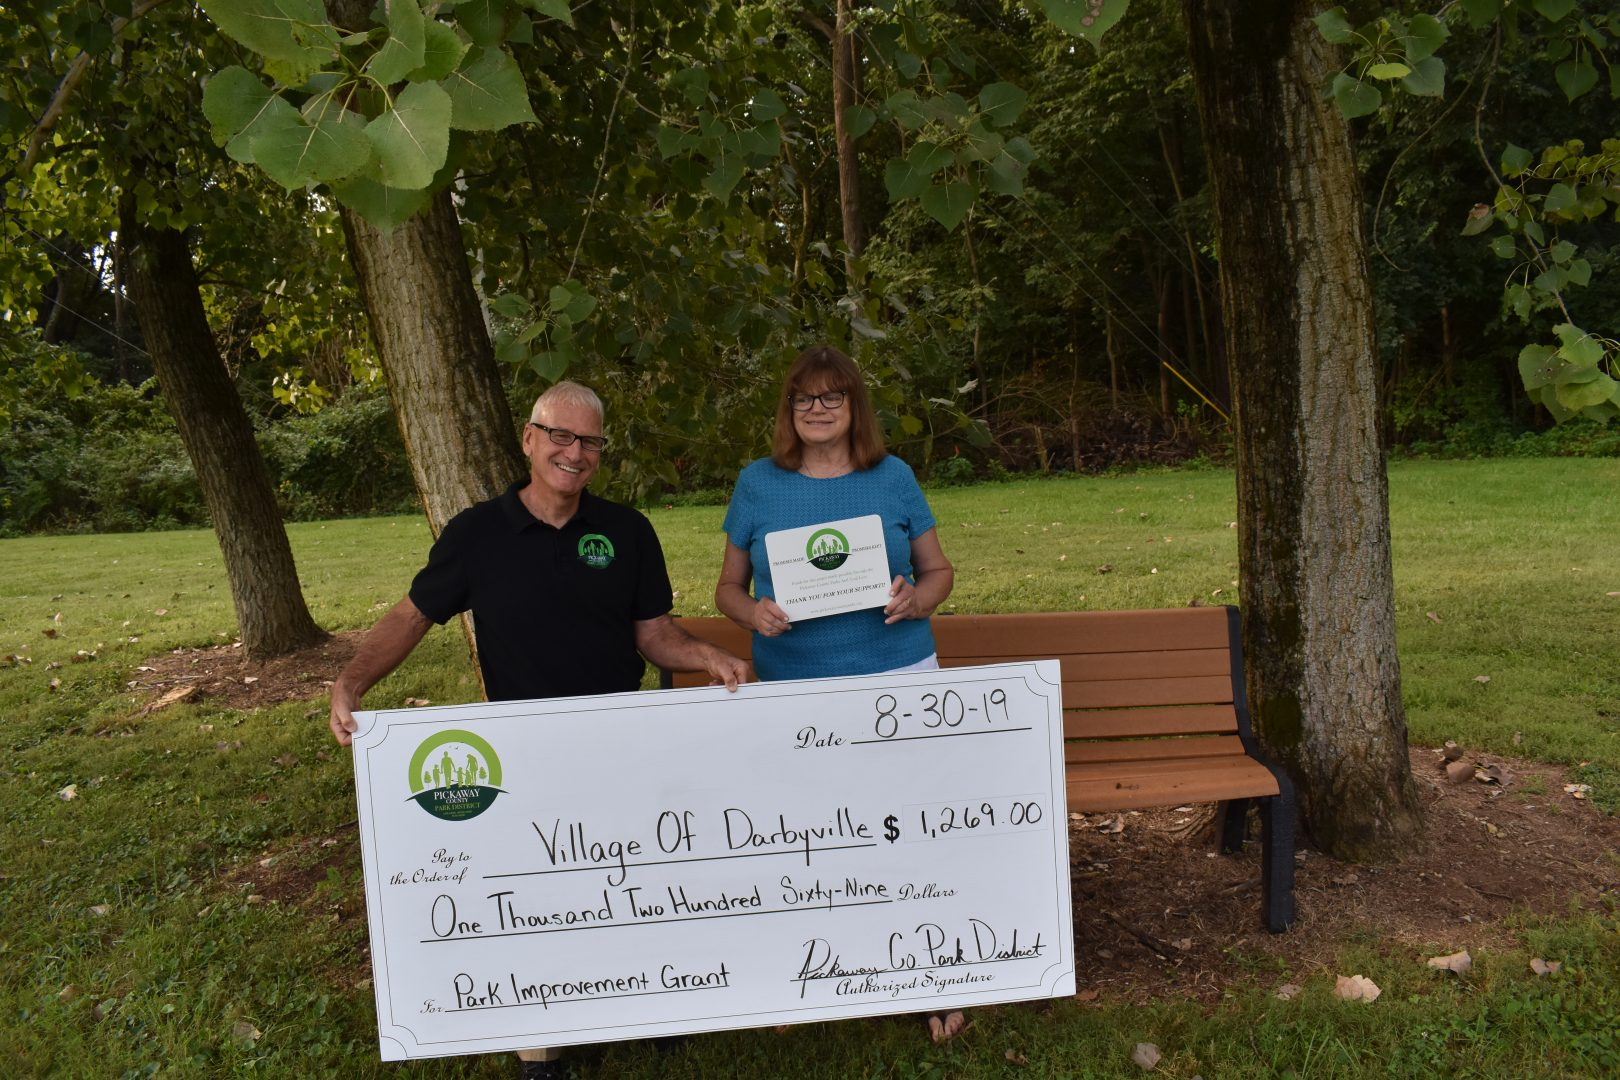 2019 Grant to the Village of Darbyville at Darbyville Park for new benches